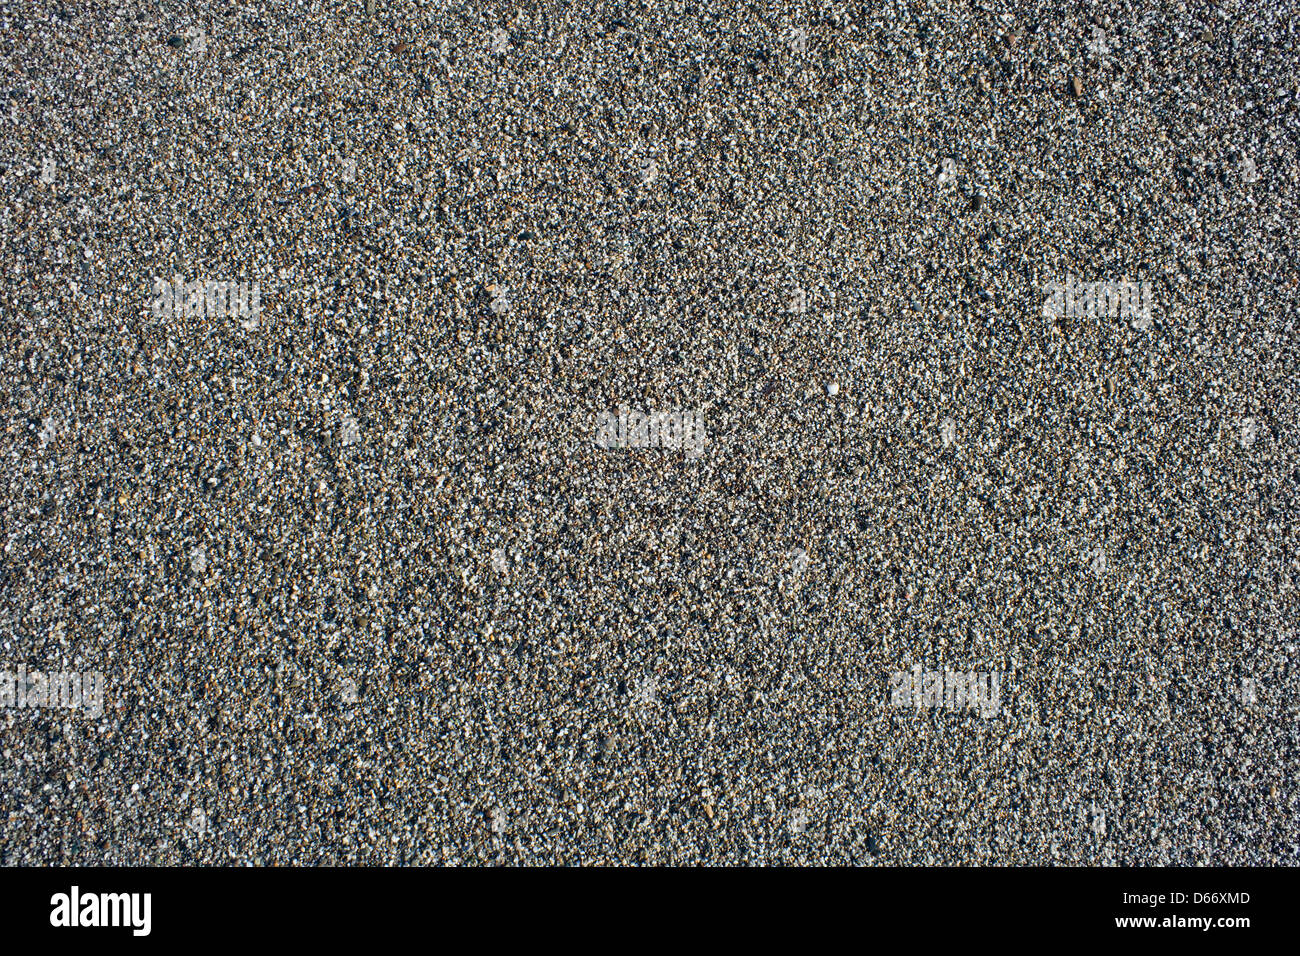 damp and grainy sand background - Stock Image